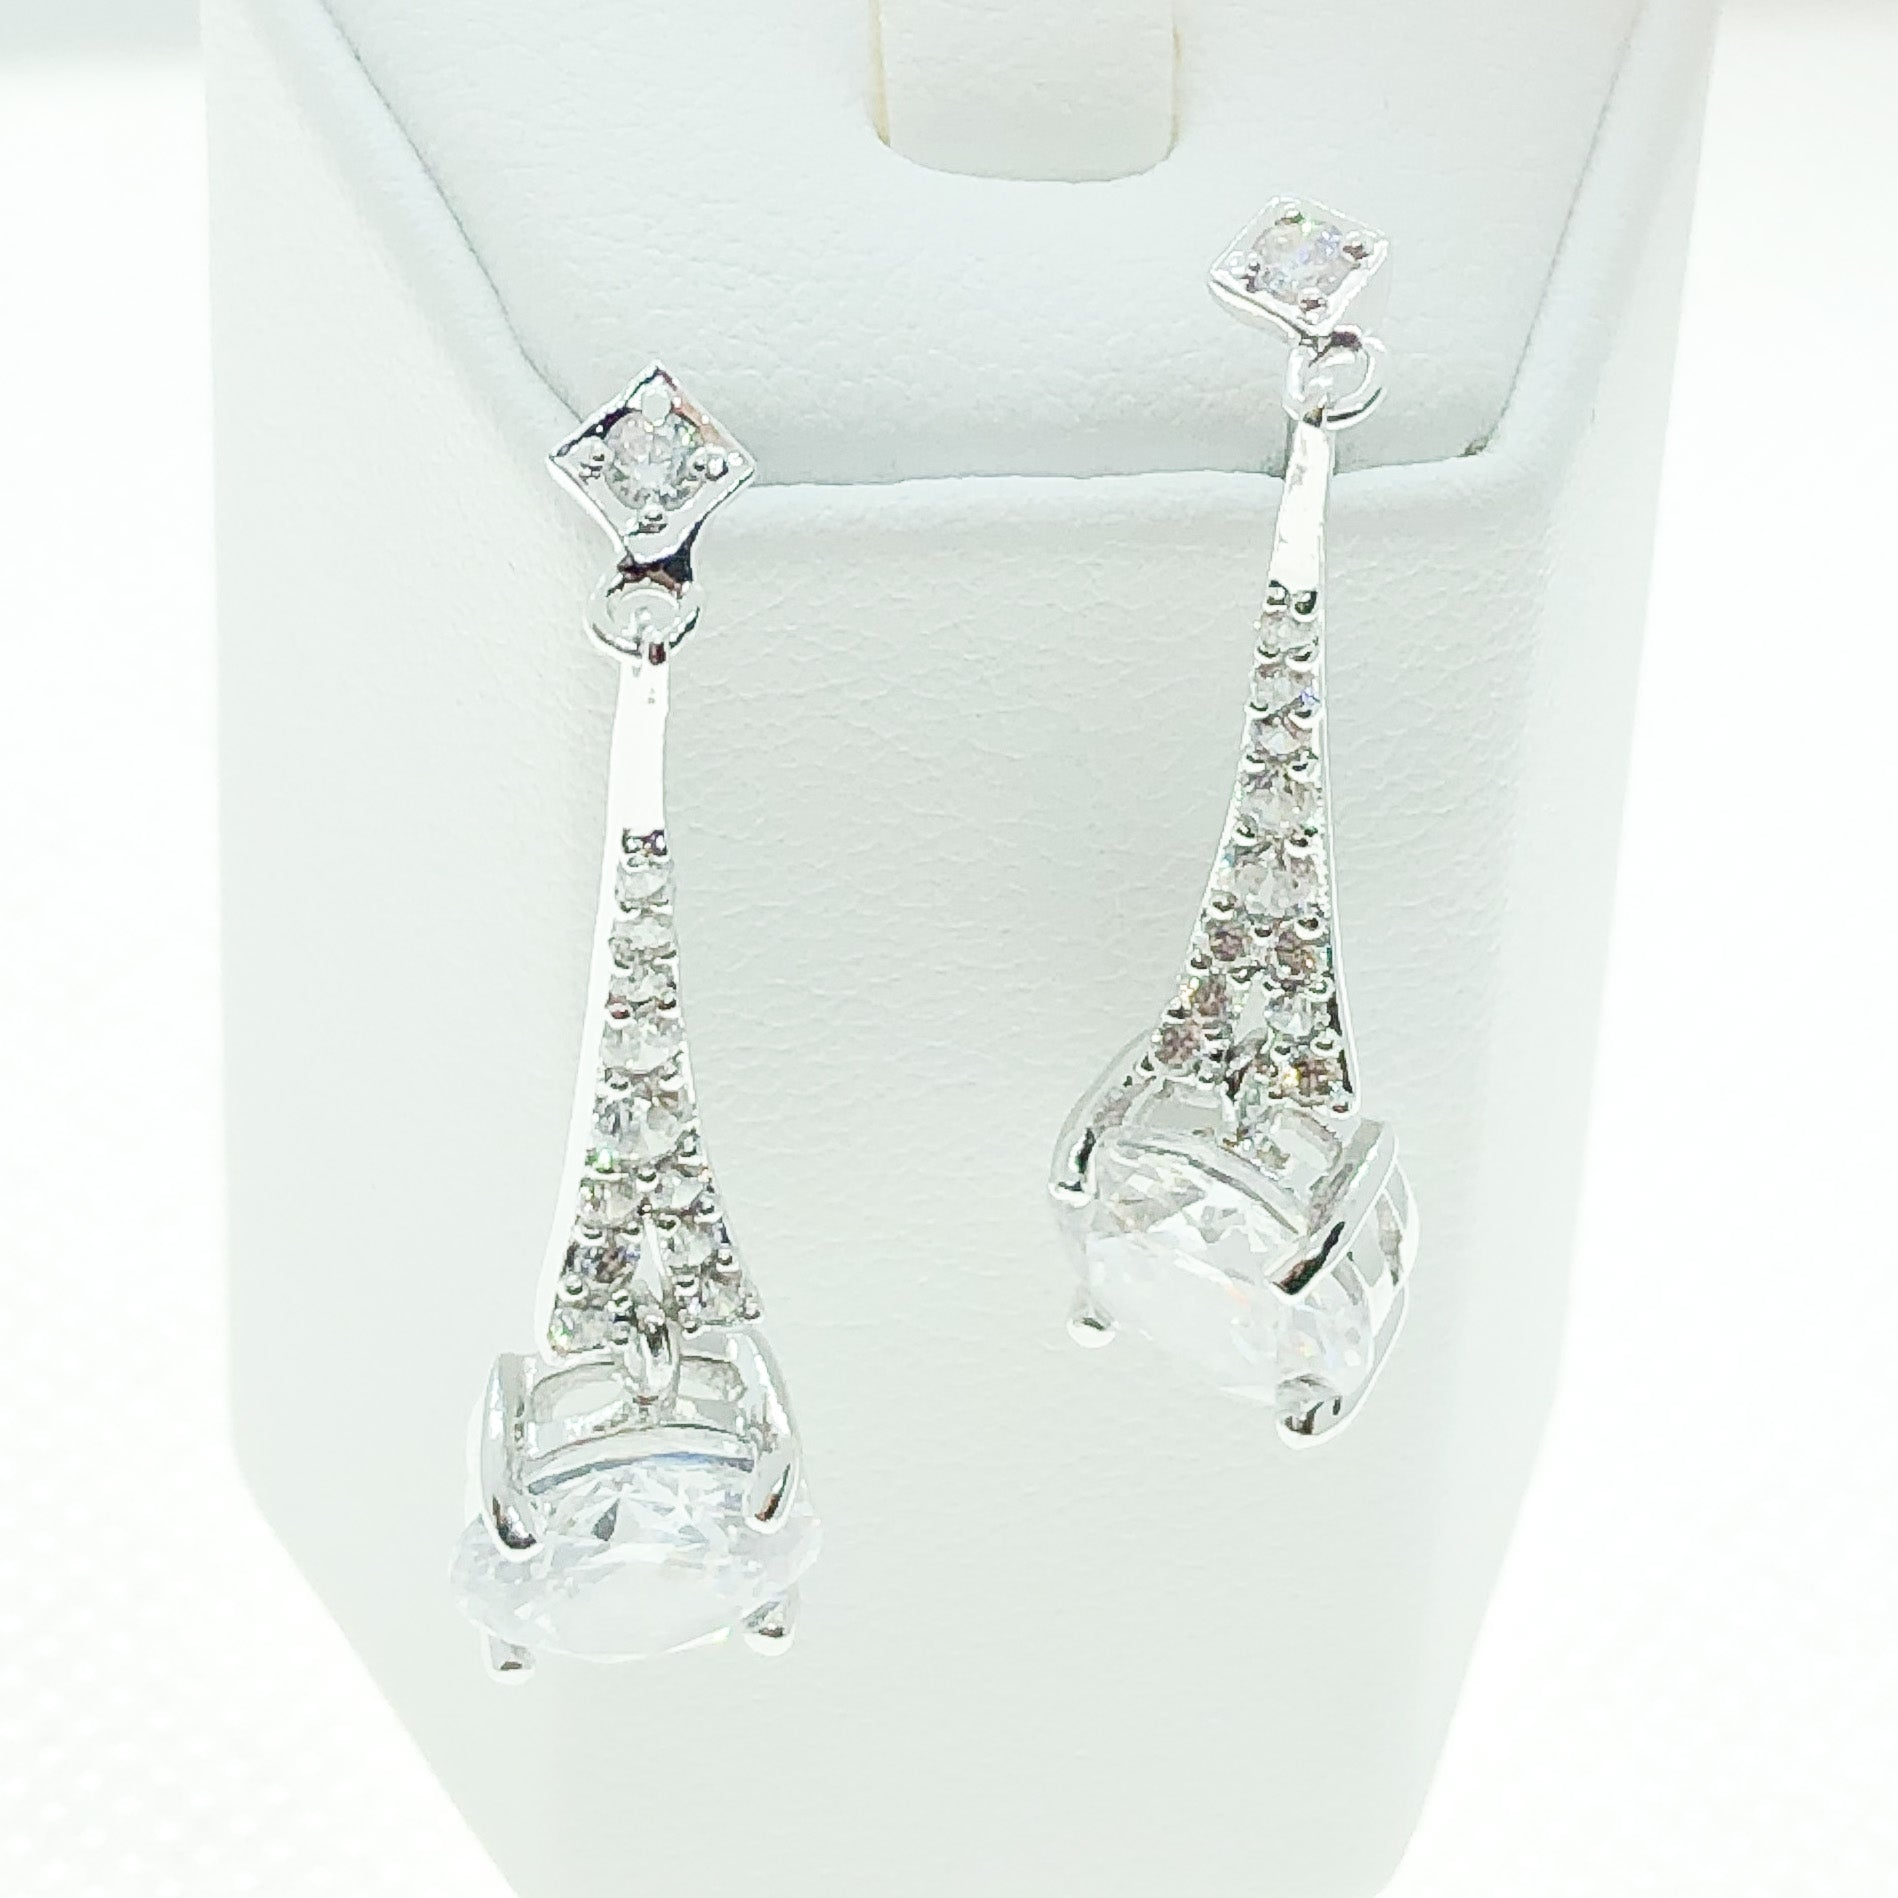 ID: E4354 WOMEN JEWELRY 18K WHITE GOLD GF SHINING CLEAR STONES ETERNITY EARRINGS FASHION LADY DROP ENGAGEMENT WEDDING DANGLE